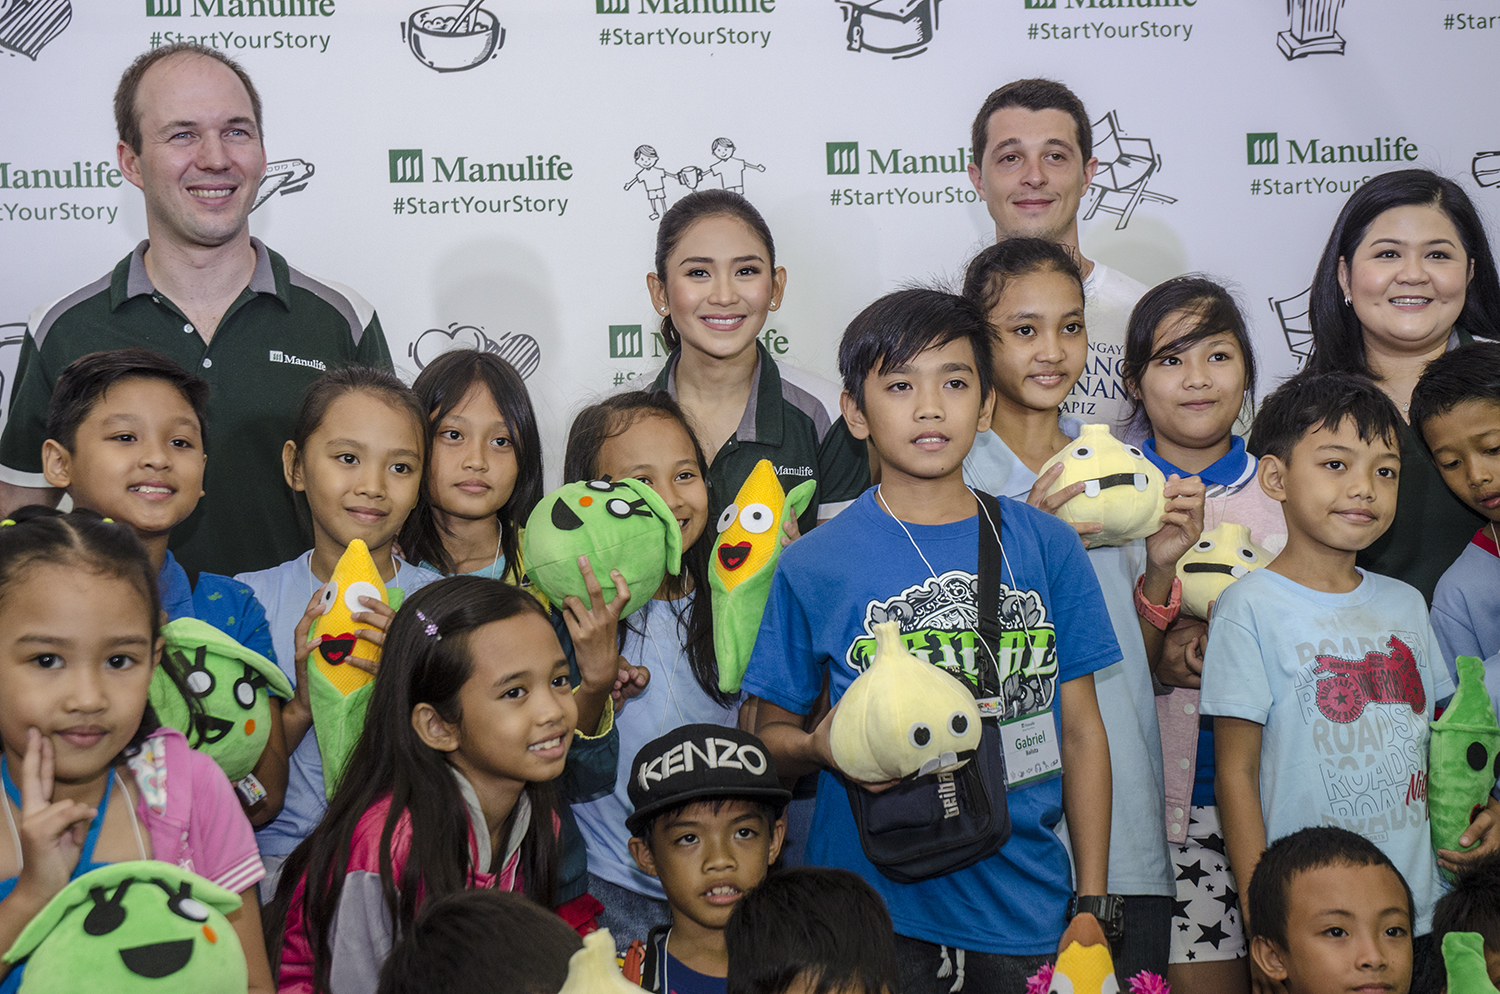 Sarah with the Manulife staff and kids from Gawad Kalinga during the charity event at the Museo Pambata. Photo by Rob Reyes/Rappler